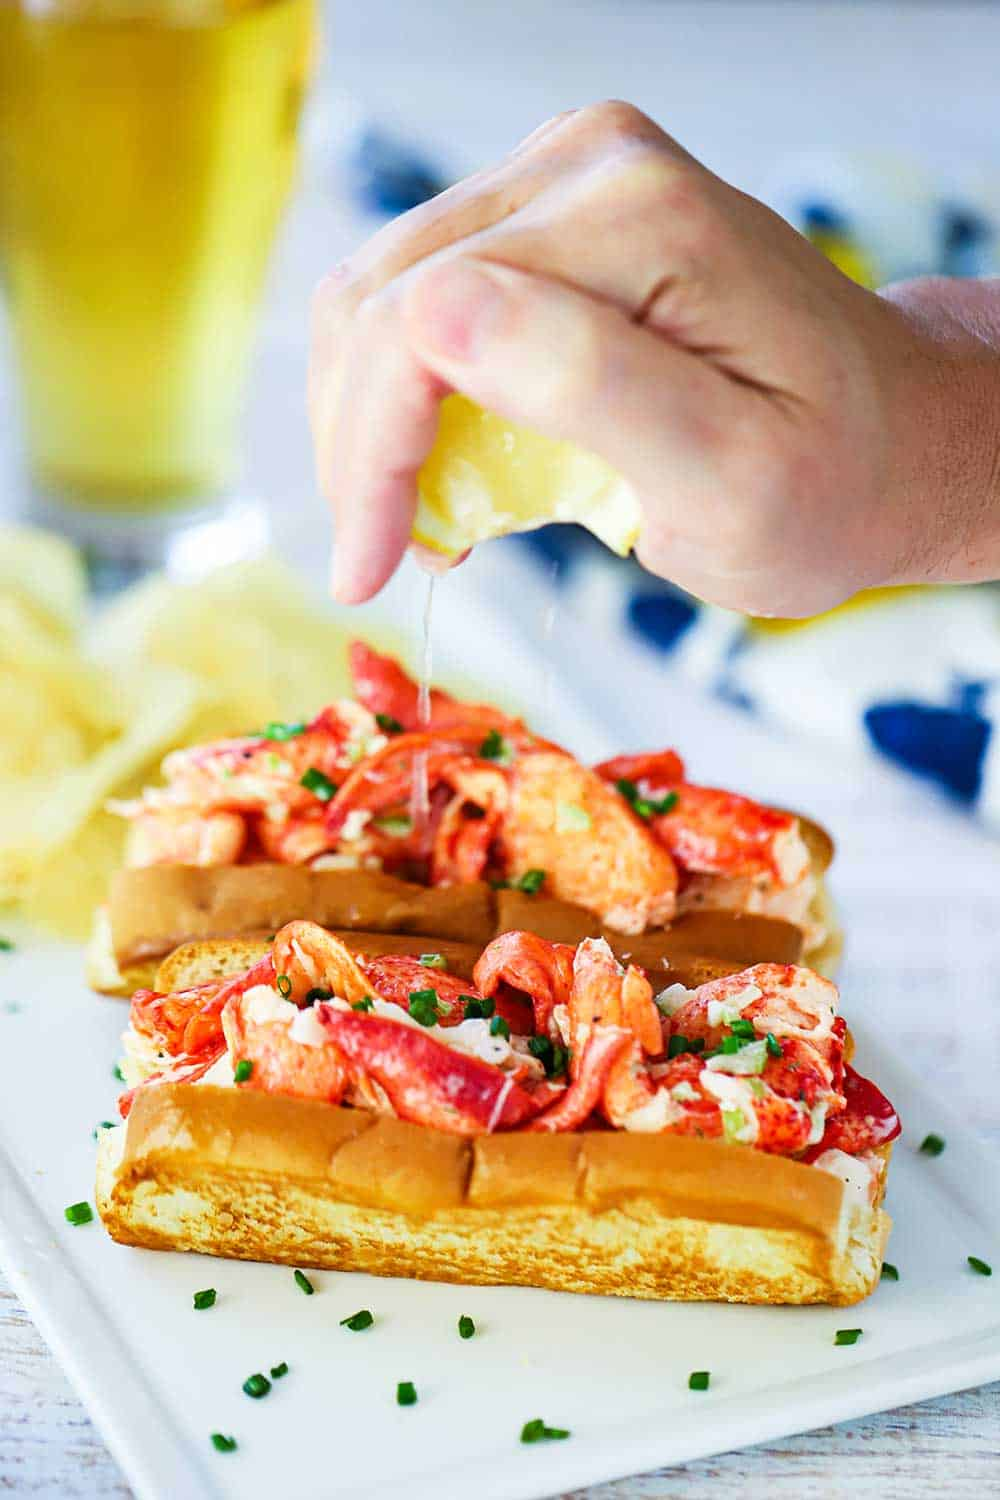 A hand squeezing a lemon wedge over the tops of two lobster rolls on a white plate.